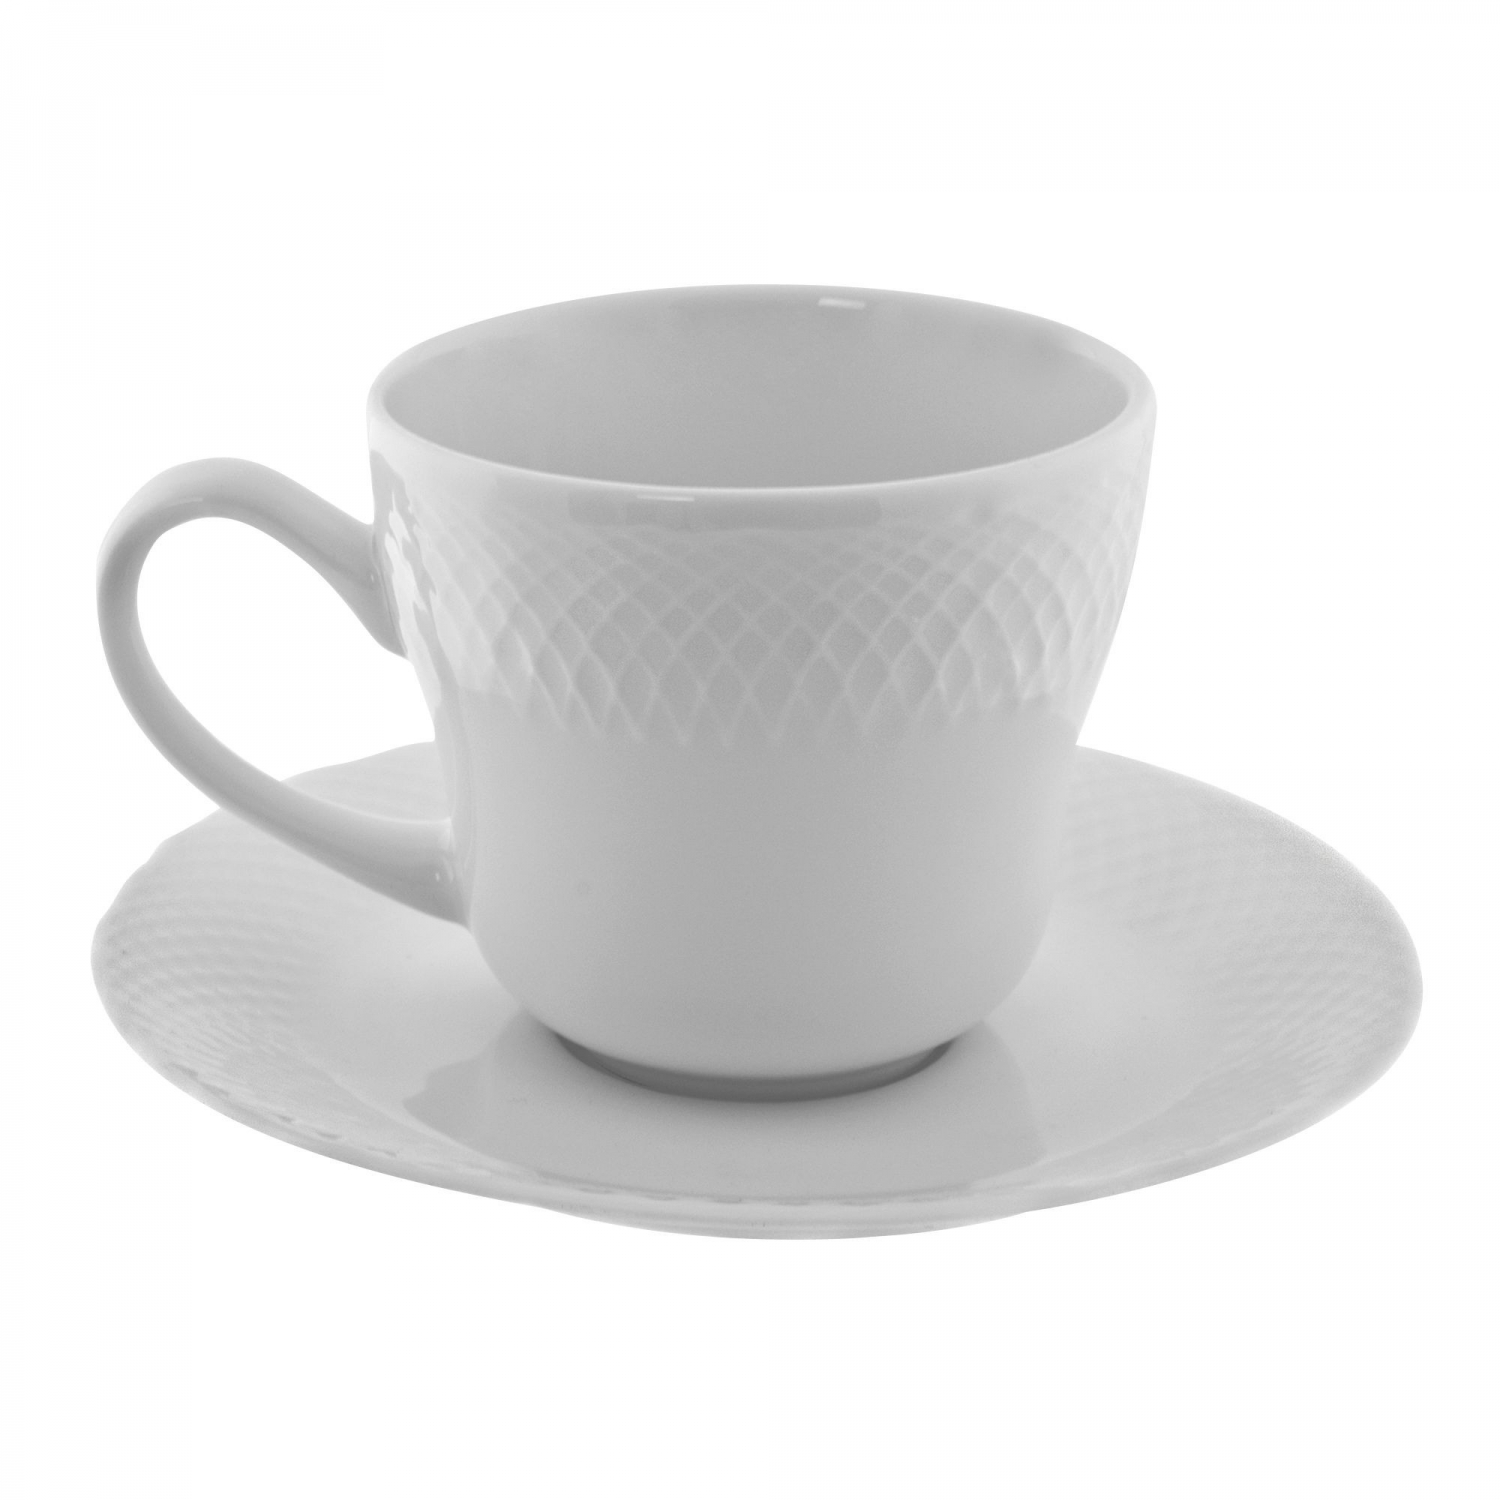 10 Strawberry Street WW0009 White Wicker Cup and Saucer 7-3/4 oz.